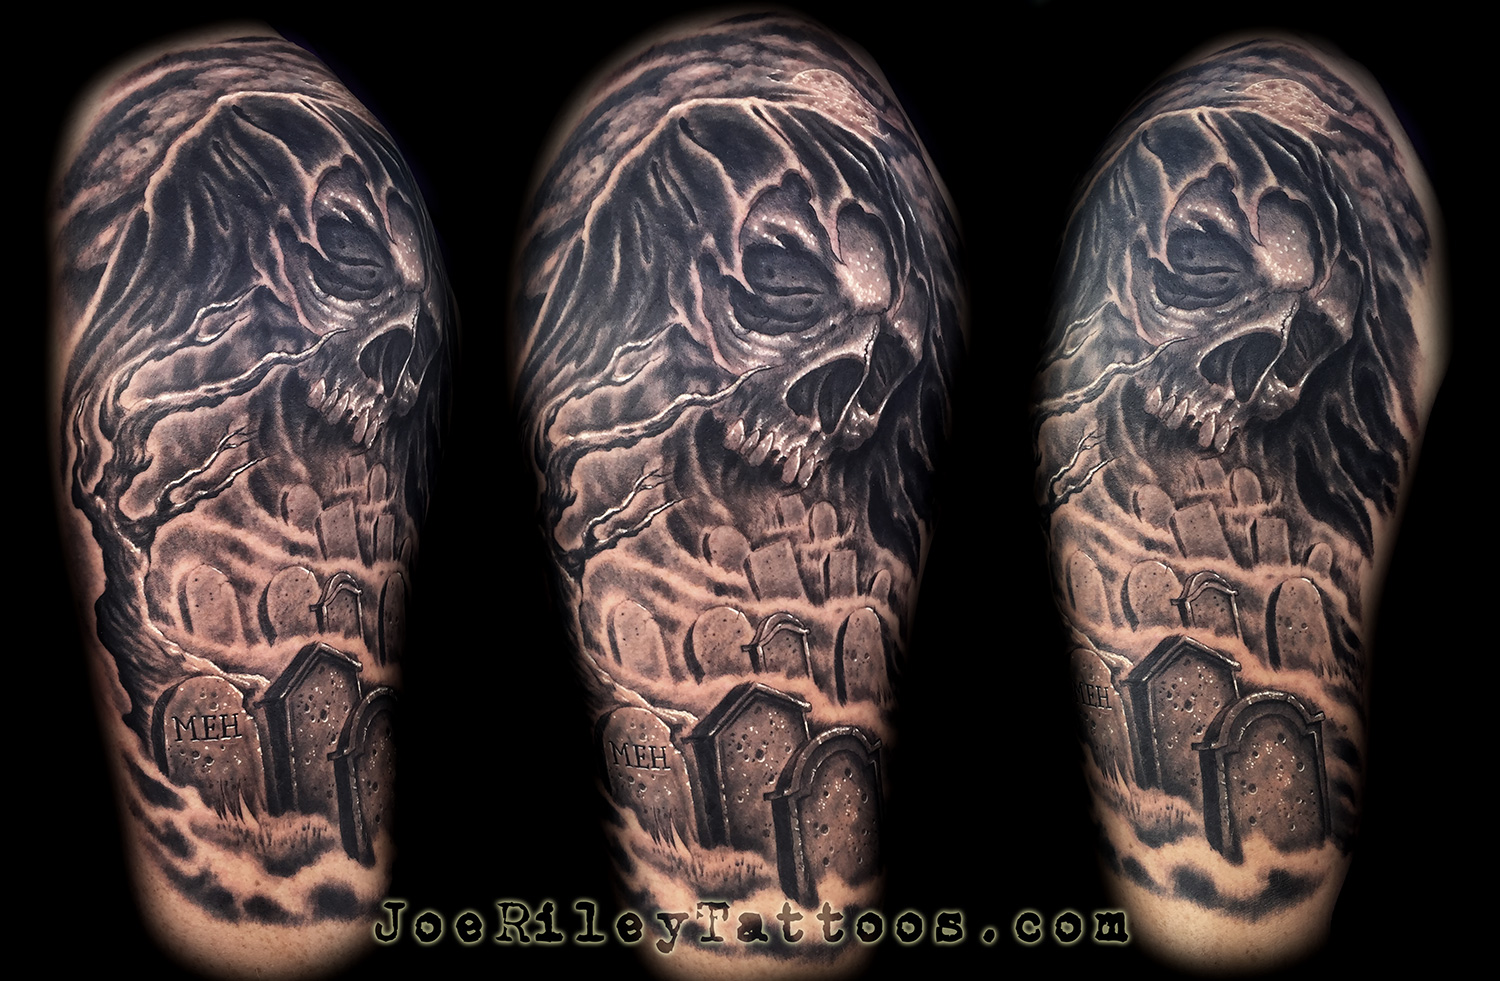 Best las vegas tattoo artist, las vegas tattoo shops, tattoo shops in las vegas, joe riley tattos